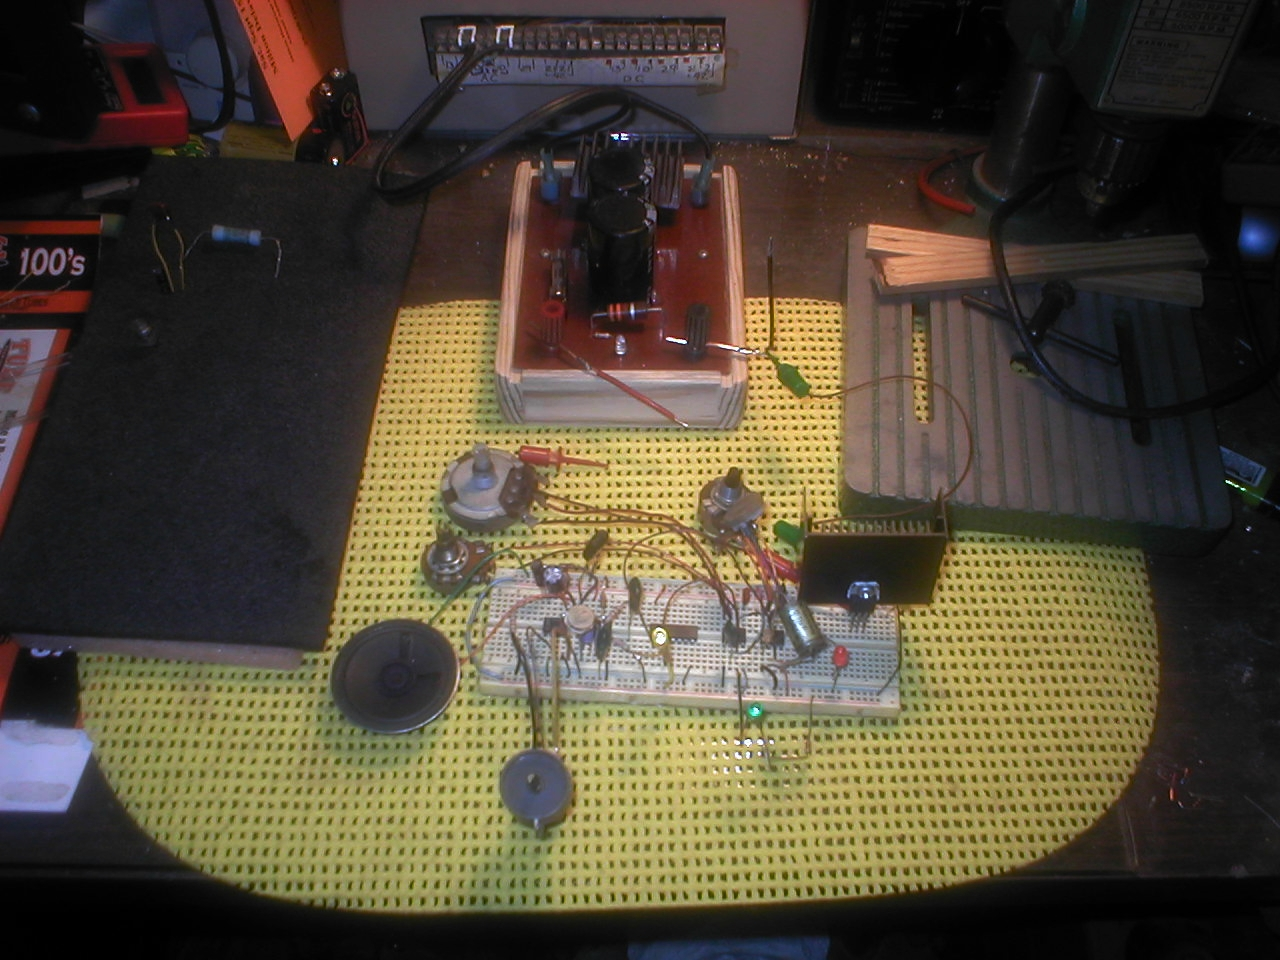 Picture of Raw Power Supply